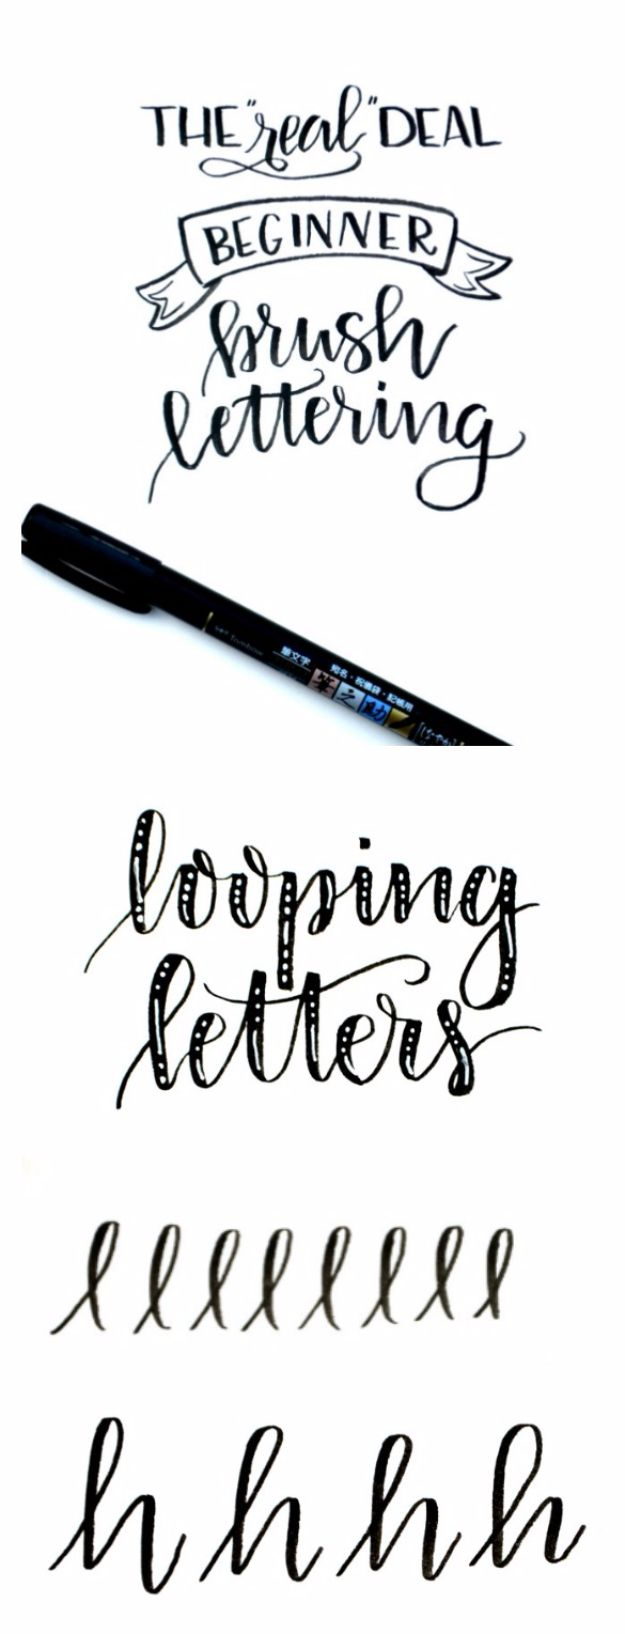 Brush Lettering Tutorials - Looping Letters - Simple and Fun Calligraphy Tutorial Videos - How To Paint the Alphabet in Calligraphy Handwriting with Pens, Watercolors, Adobe Illustrator and Sharpie - Typography Tips and Help http://diyjoy.com/brush-lettering-tutorials